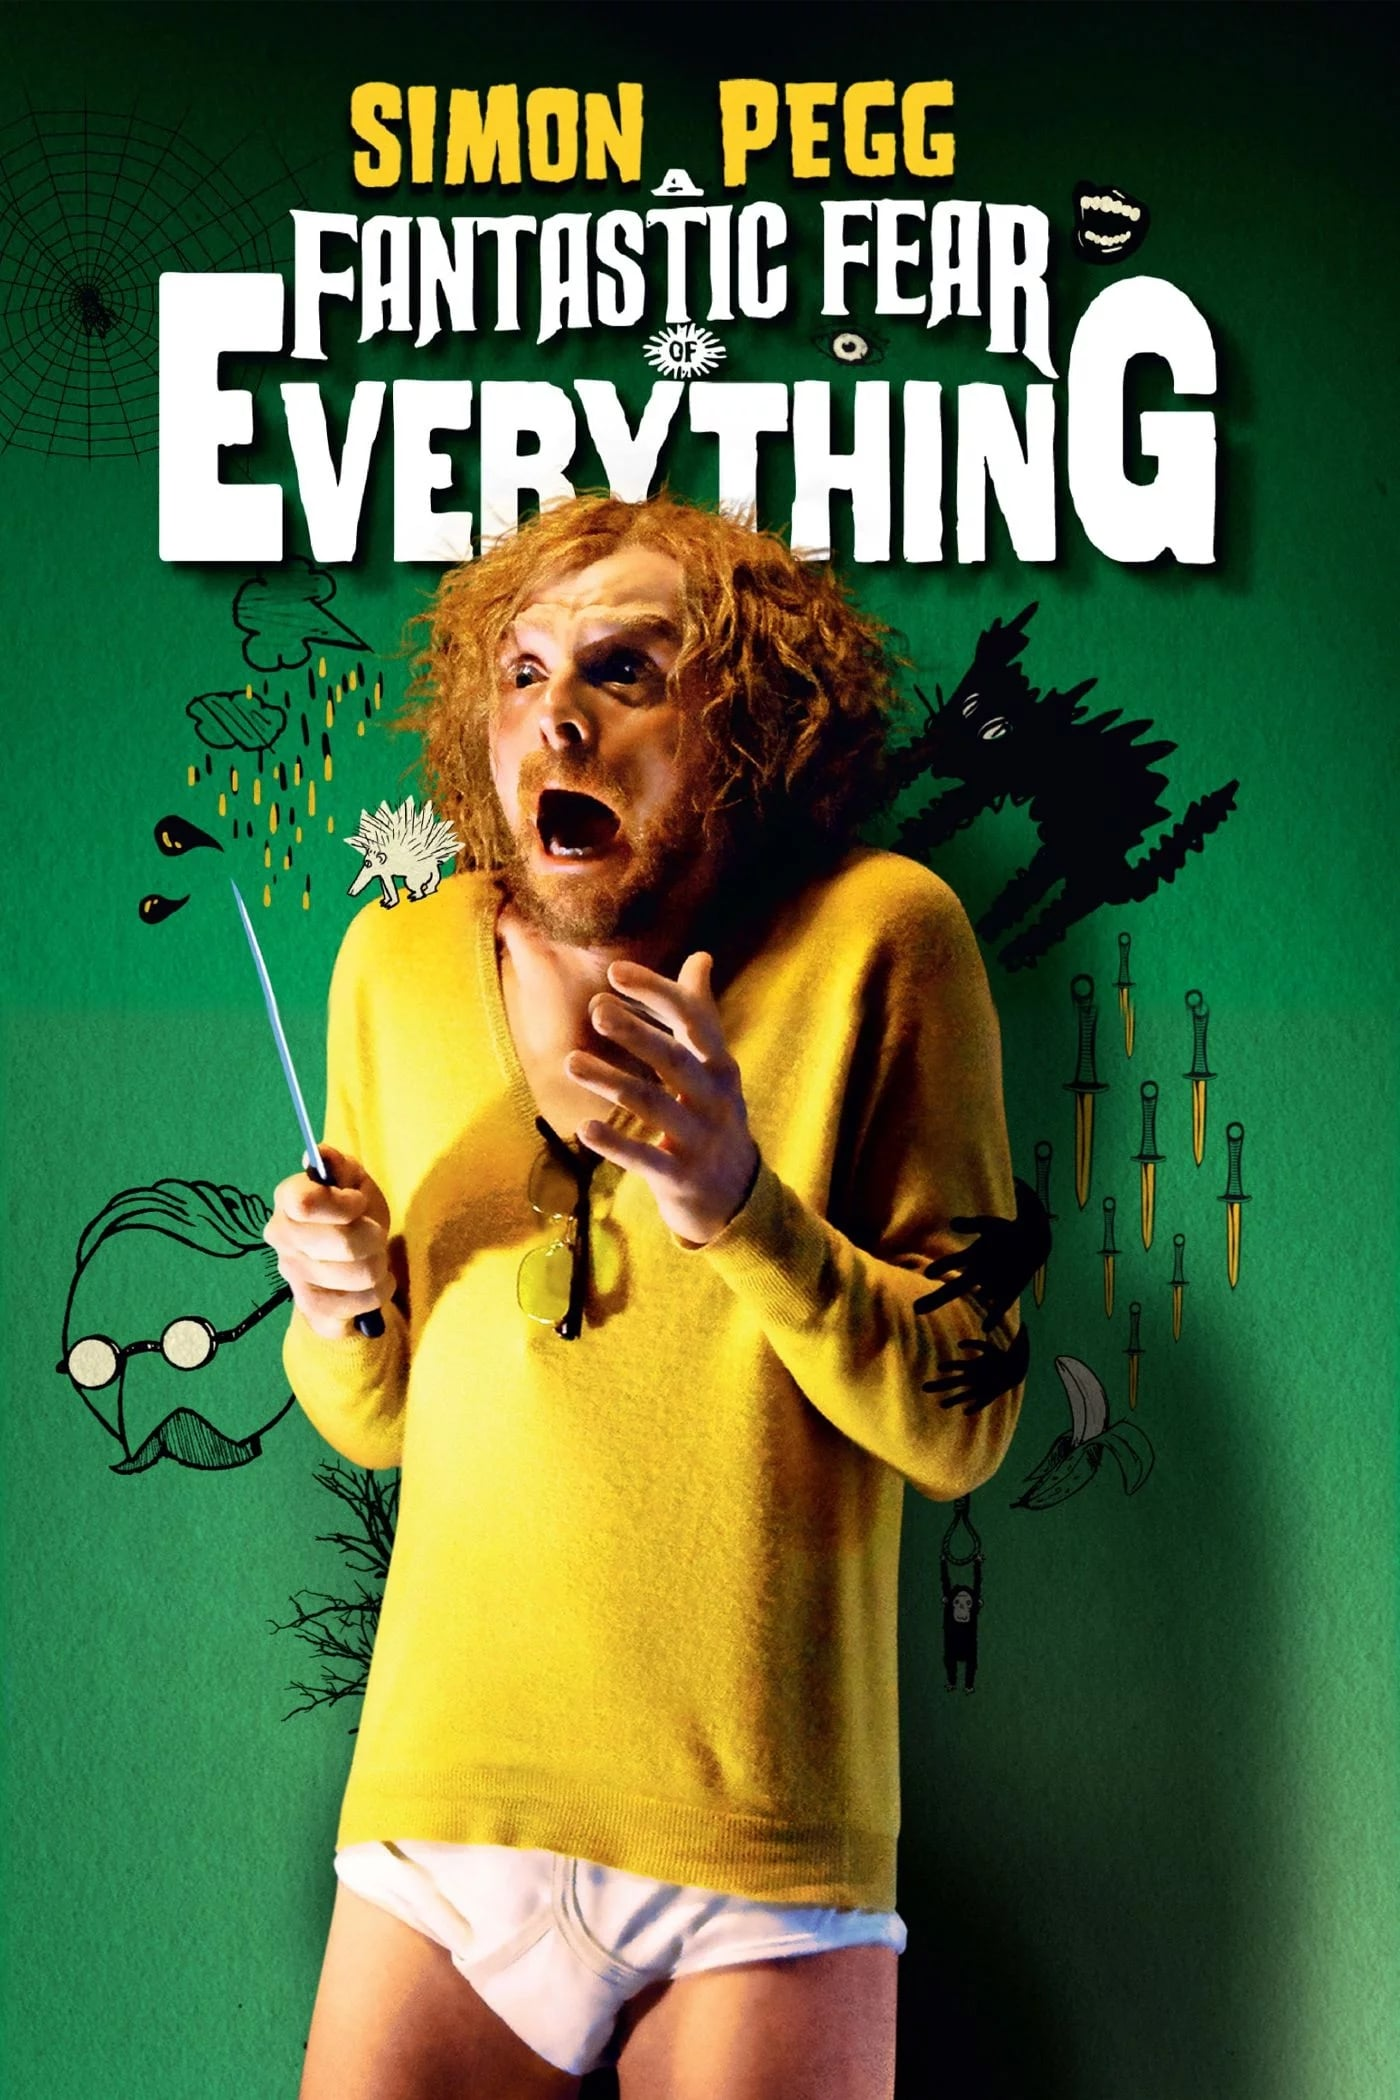 A Fantastic Fear of Everything (2012)